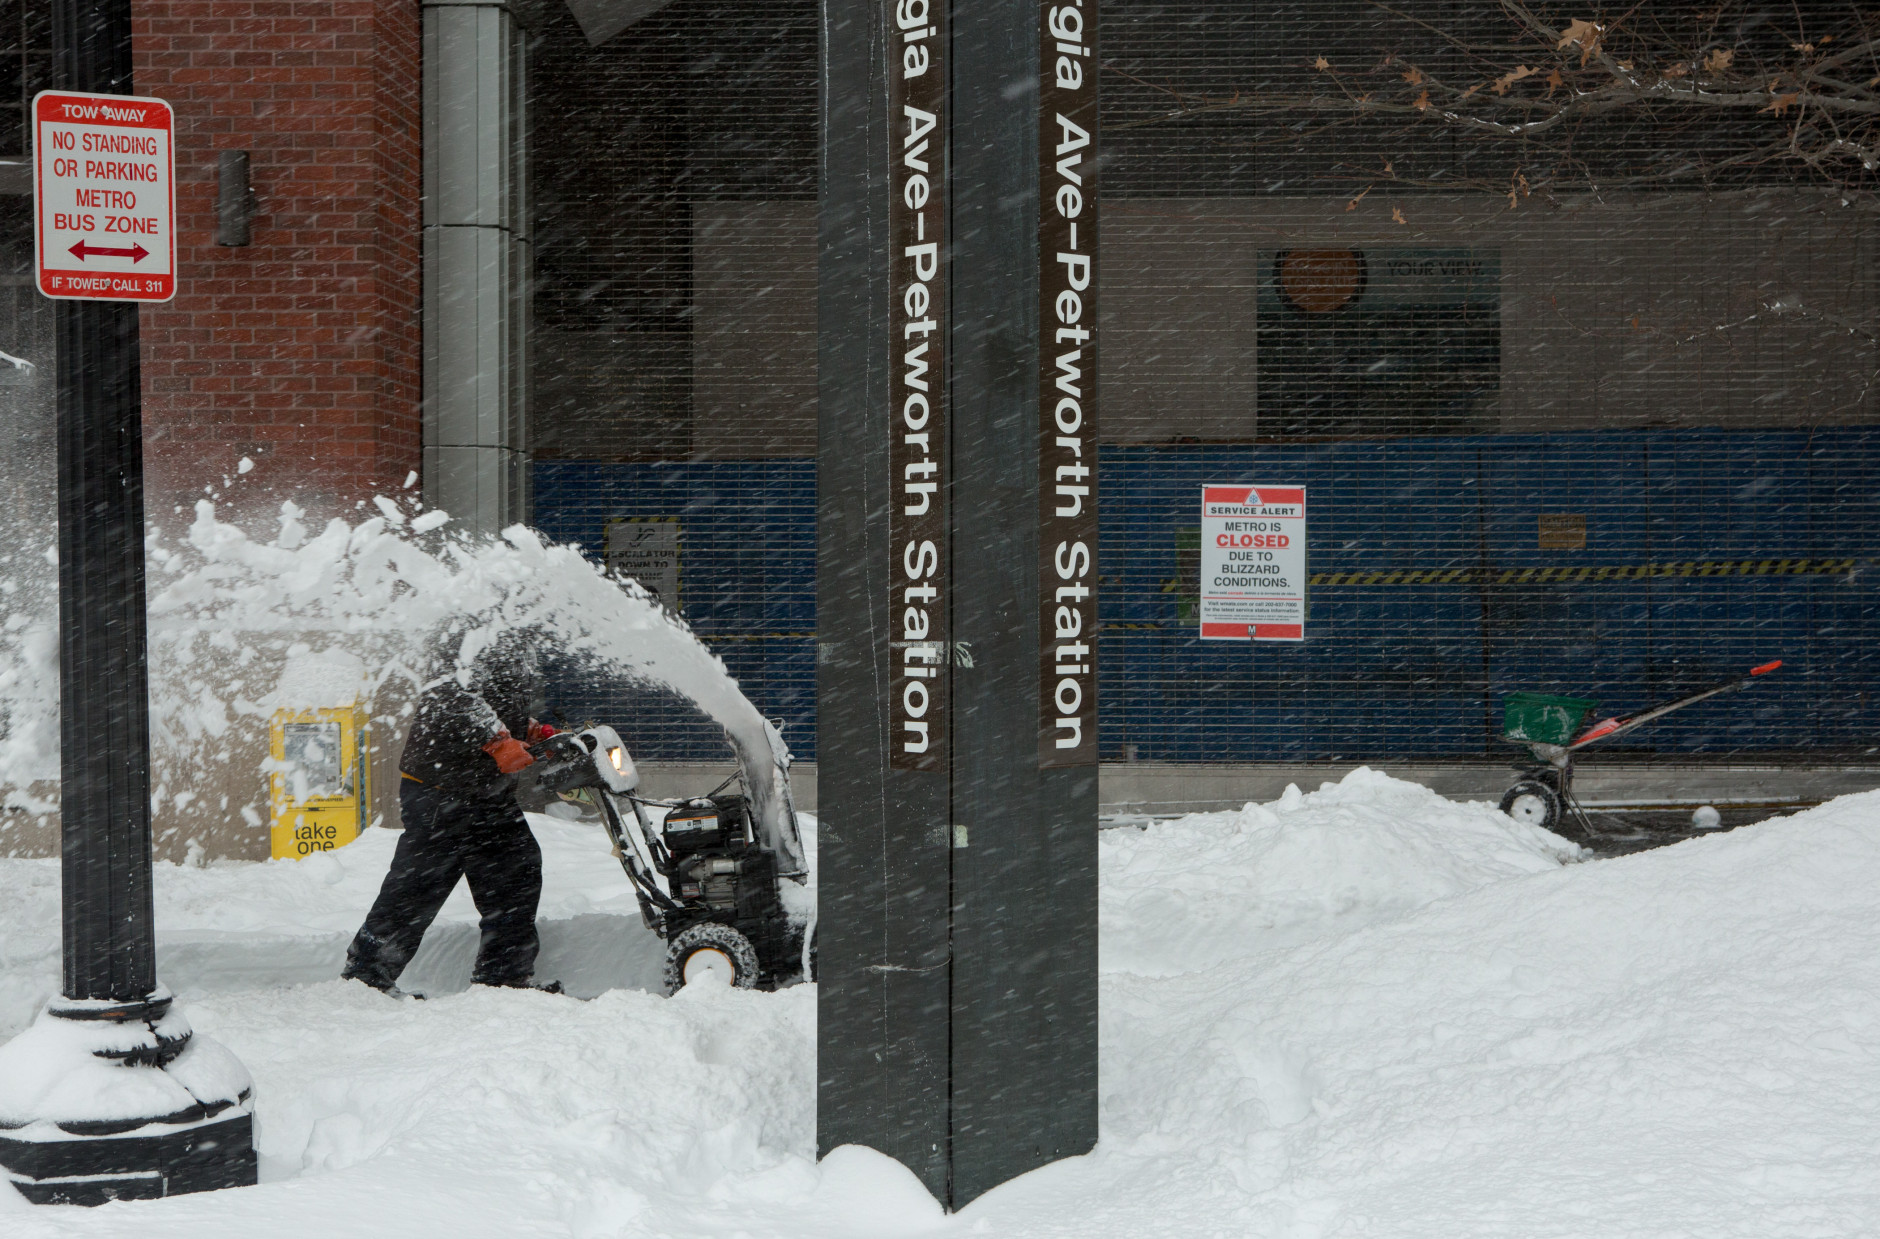 WASHINGTON, DC - JANUARY 23:  A man uses a snow blower to clear a sidewalk in front of the shuttered Georgia Ave.-Petworth metro station on January 23, 2016 in Washington, DC. Over a foot of snow has already fallen in the city in the past 24 hours, in what experts say could be a record-breaking storm.  (Photo by Allison Shelley/Getty Images)